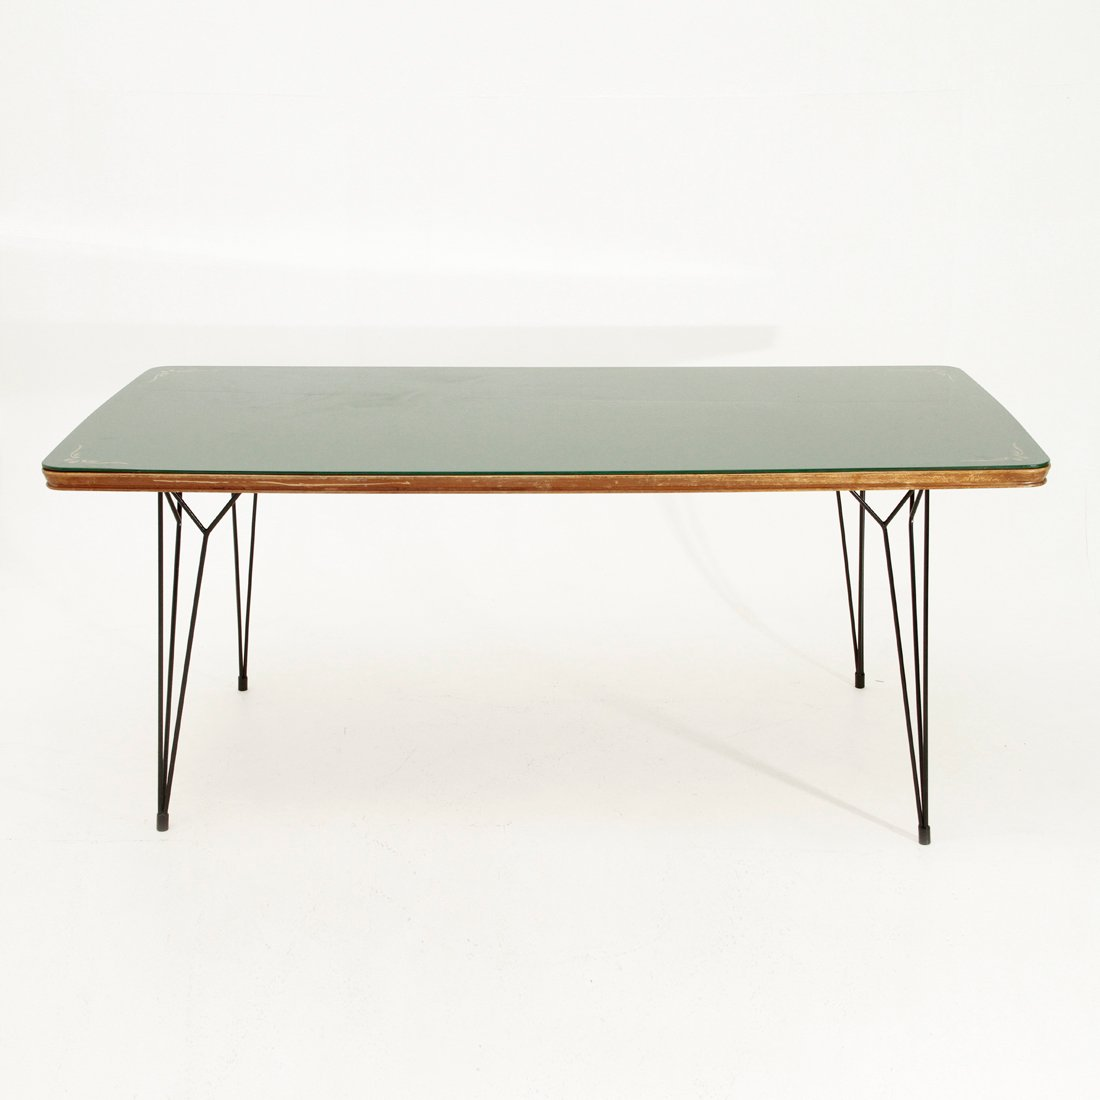 Italian Dining Table with Glass Top and Metal Legs, 1950s for sale at Pamono